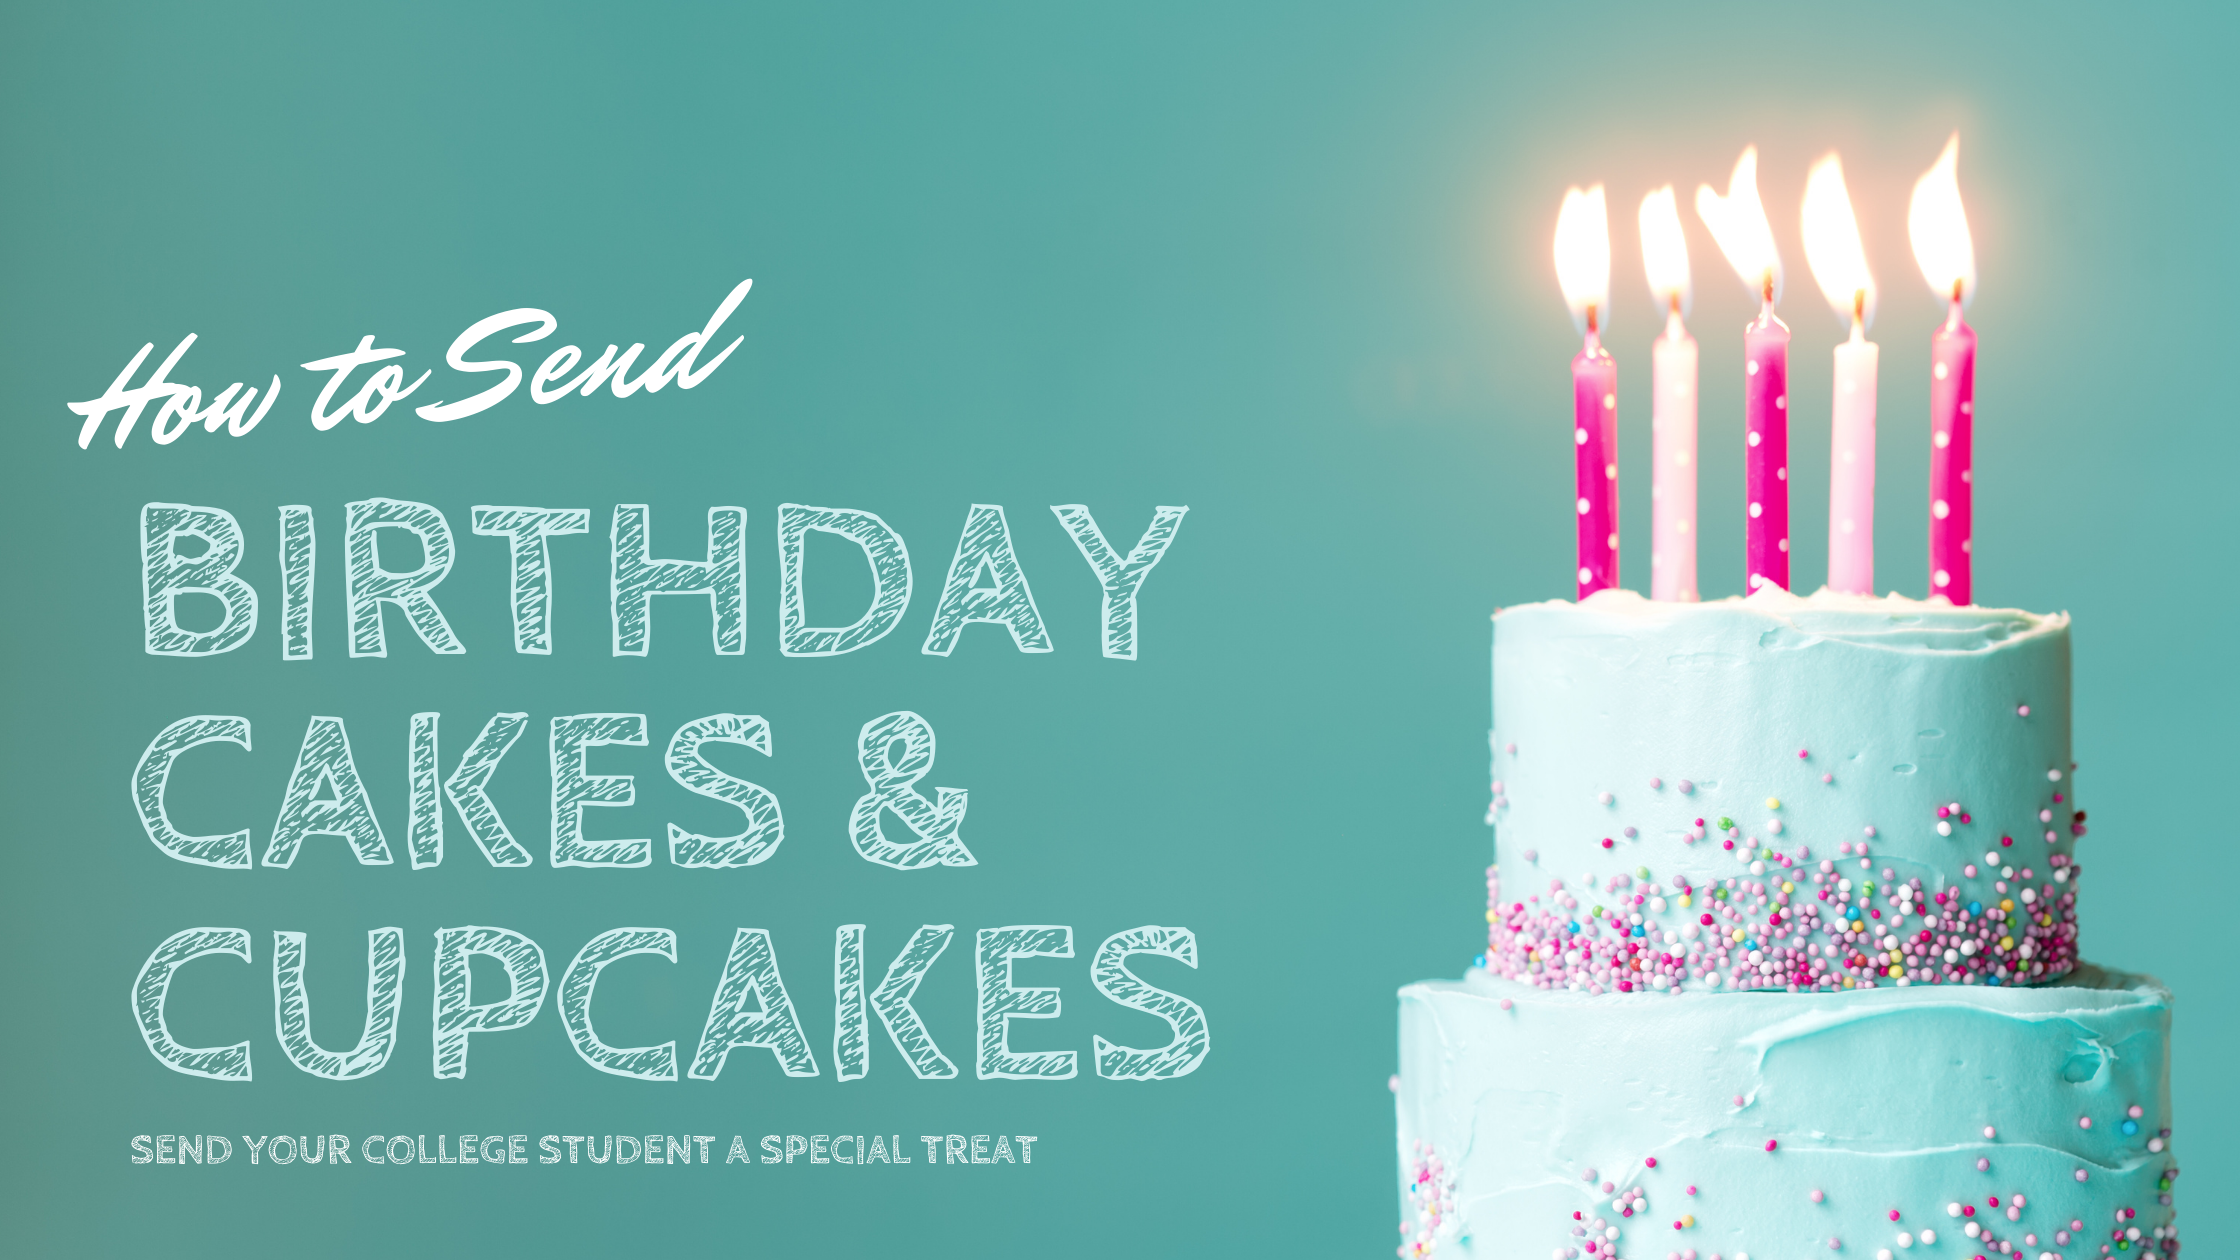 Send Birthday Cake to College Student